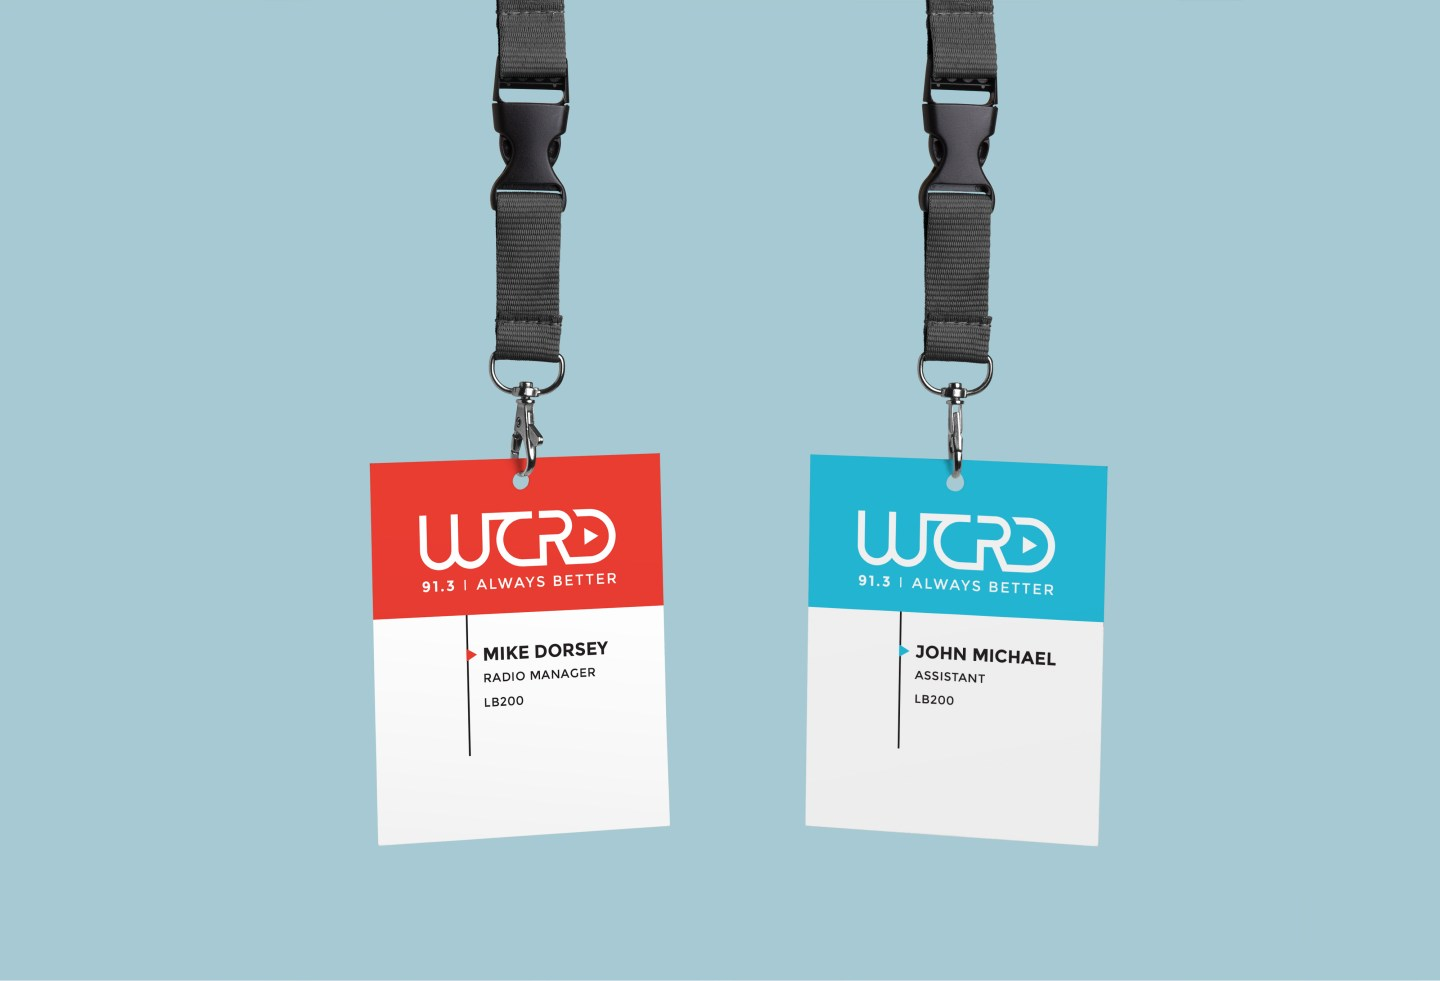 The WCRD primary logo lockup on a name badge in the two primary colors of blue and red